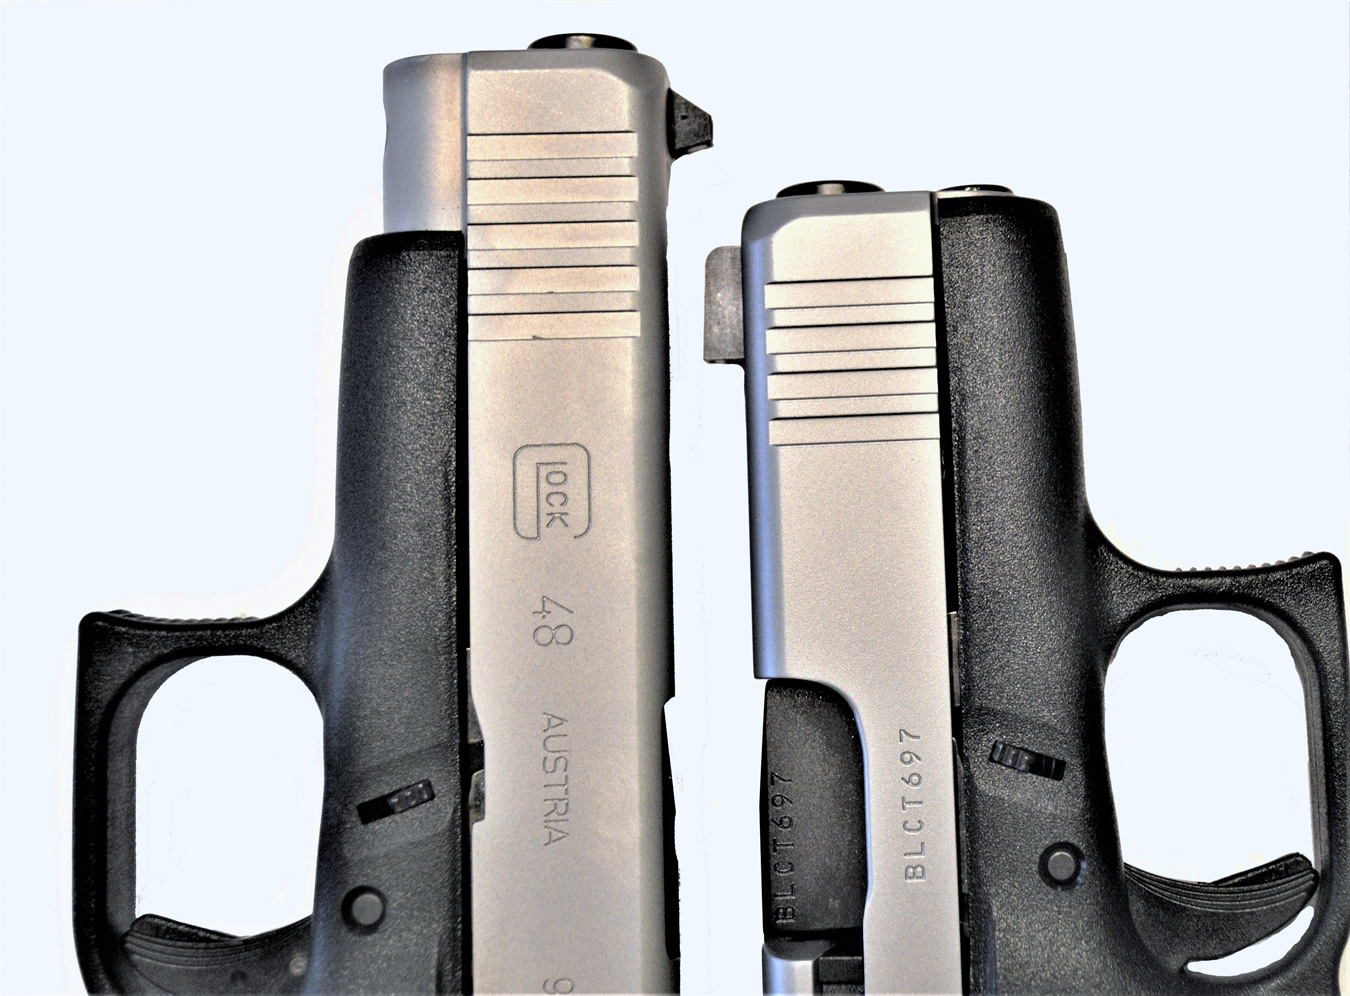 Glock 48, left and Glock 43X, right